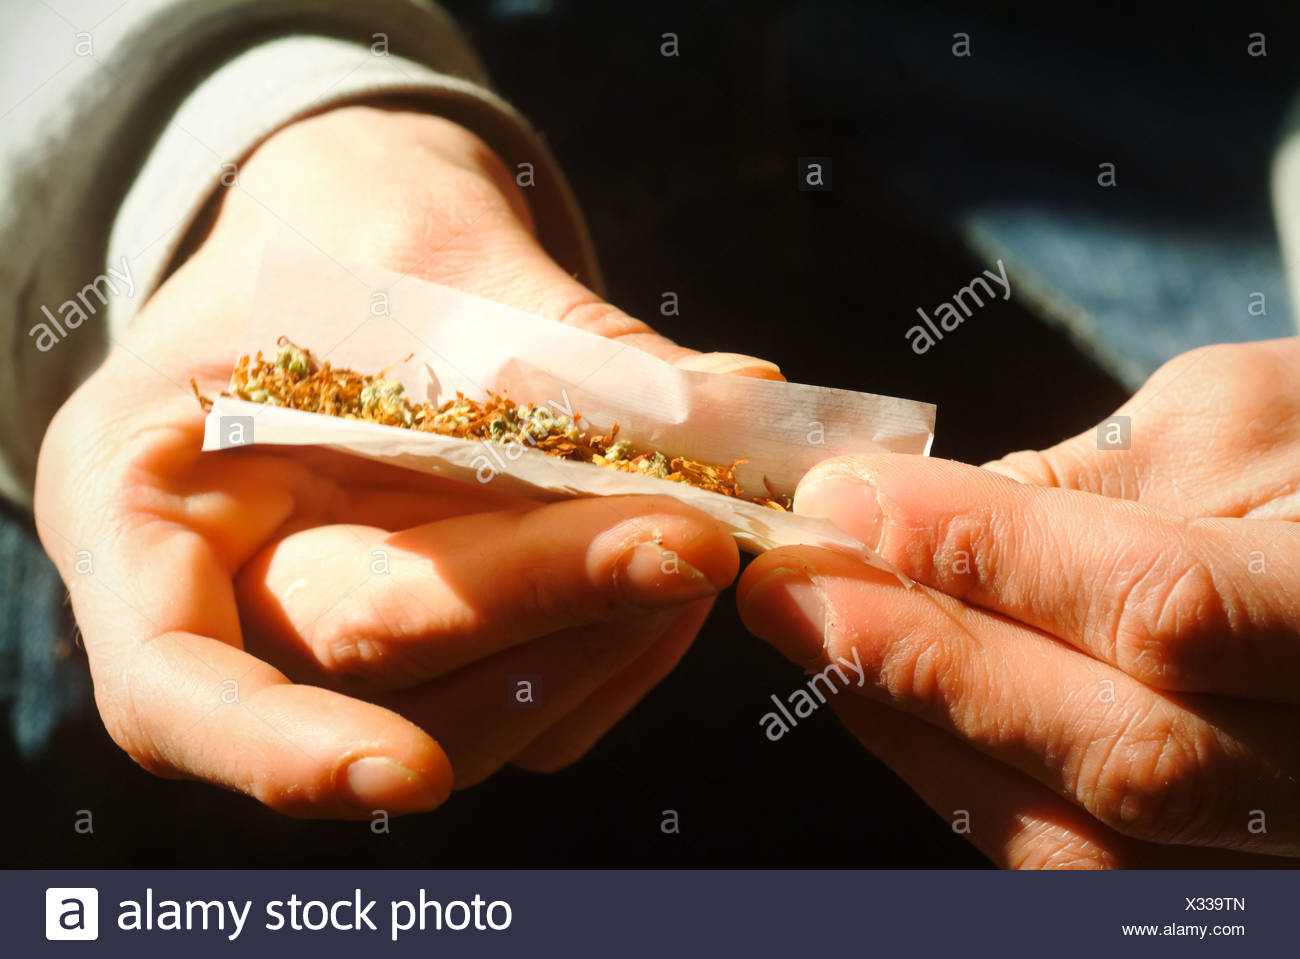 Berlin, Germany, a pothead rotates a joint - Stock Image